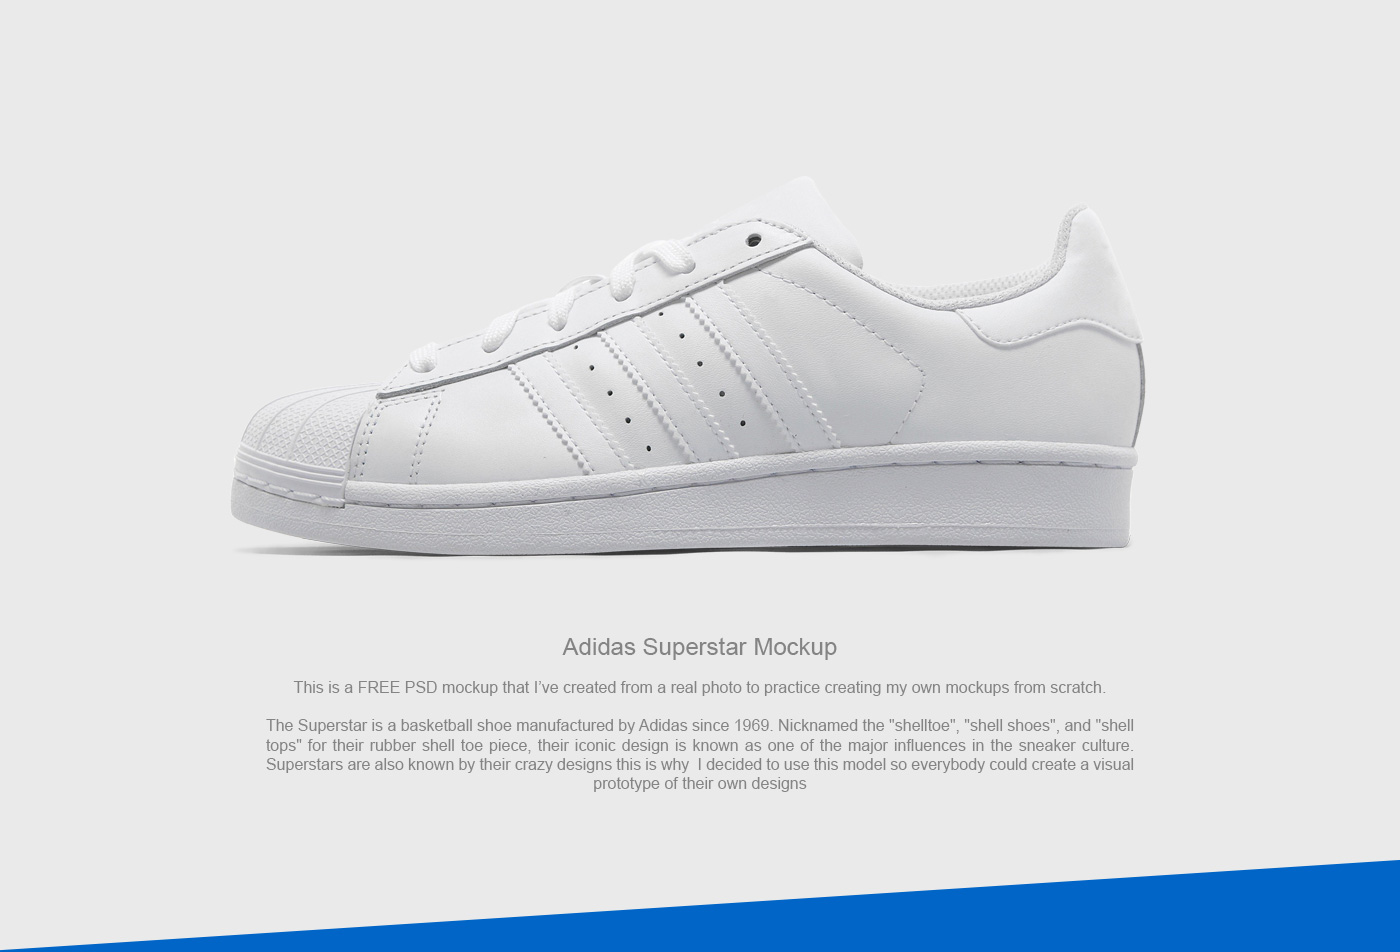 adidas,superstar,shellshoes,adicolor,stansmith,adidas originals,Mockup,free mockup ,free psd,psd,photoshop file,download,apparel,sneakers